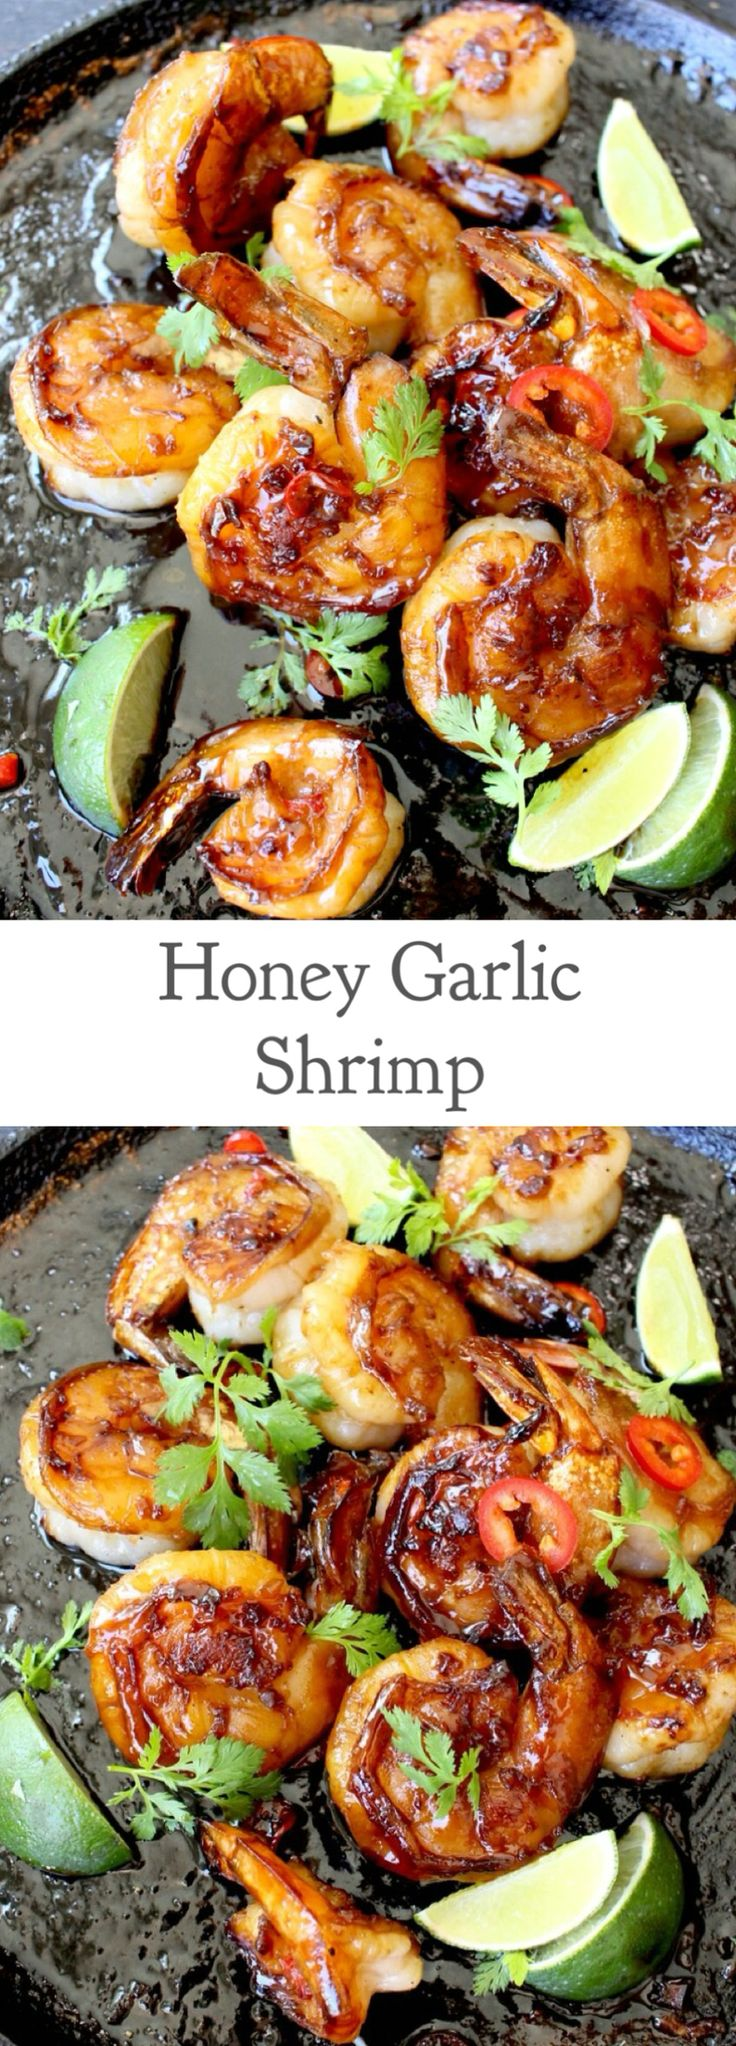 Honey Garlic Shrimp Recipe- Easy and delicious garlic honey crusted shrimp. | CiaoFlorentina.com @CiaoFlorentina use GF soy sauce